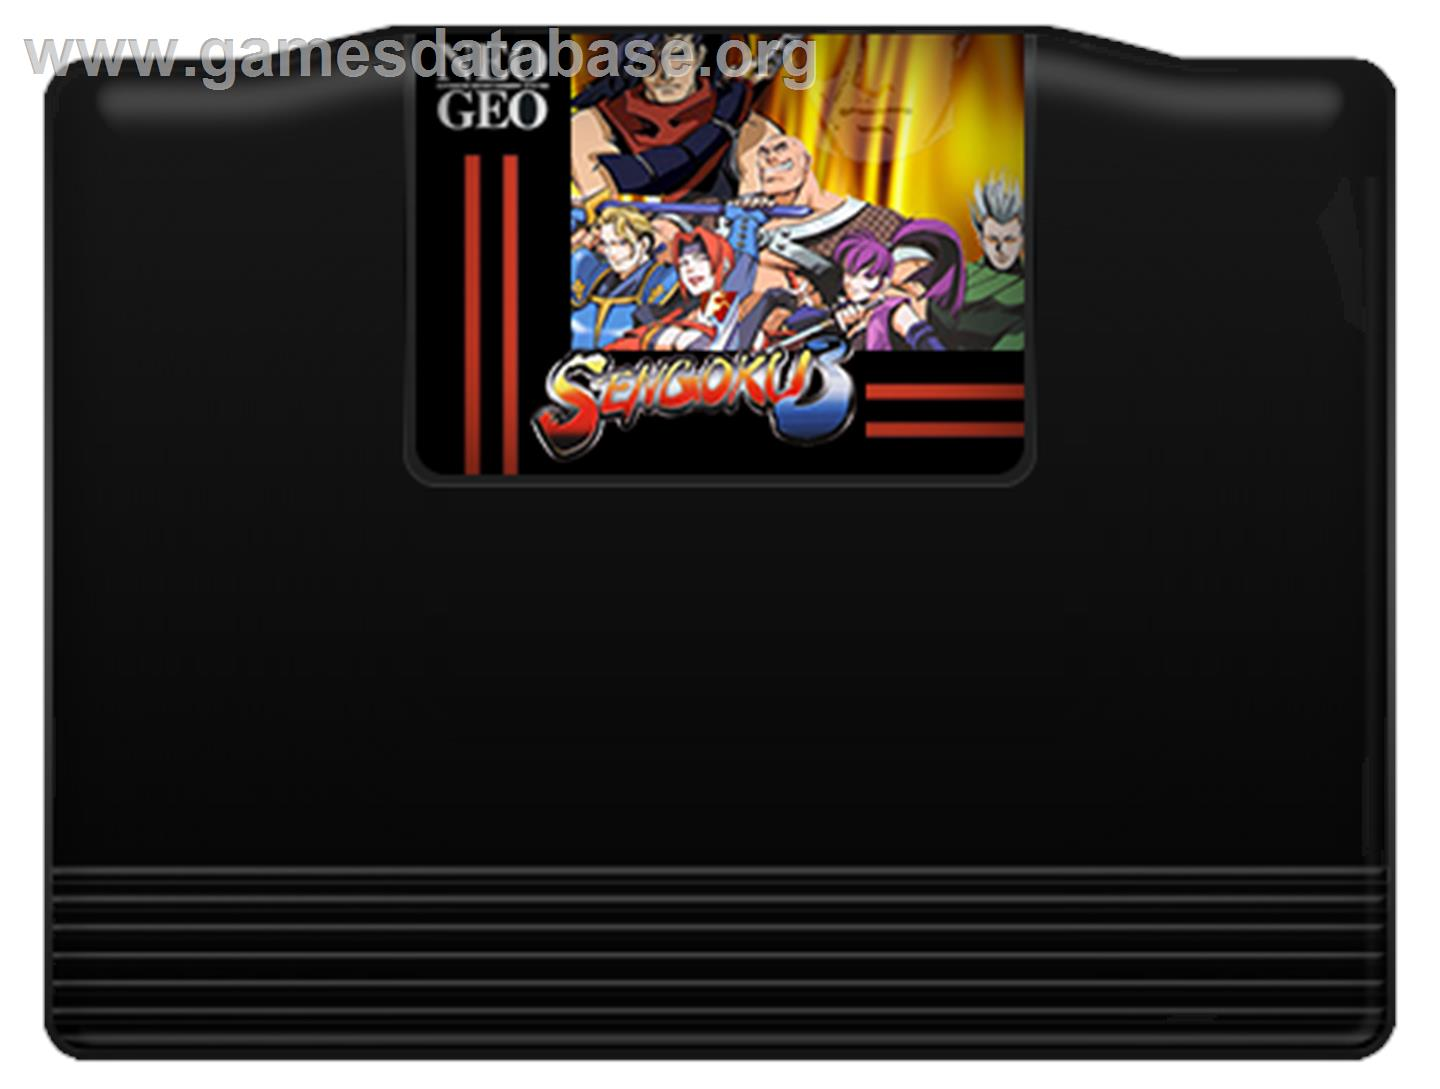 Sengoku 3 - SNK Neo-Geo AES - Artwork - Cartridge